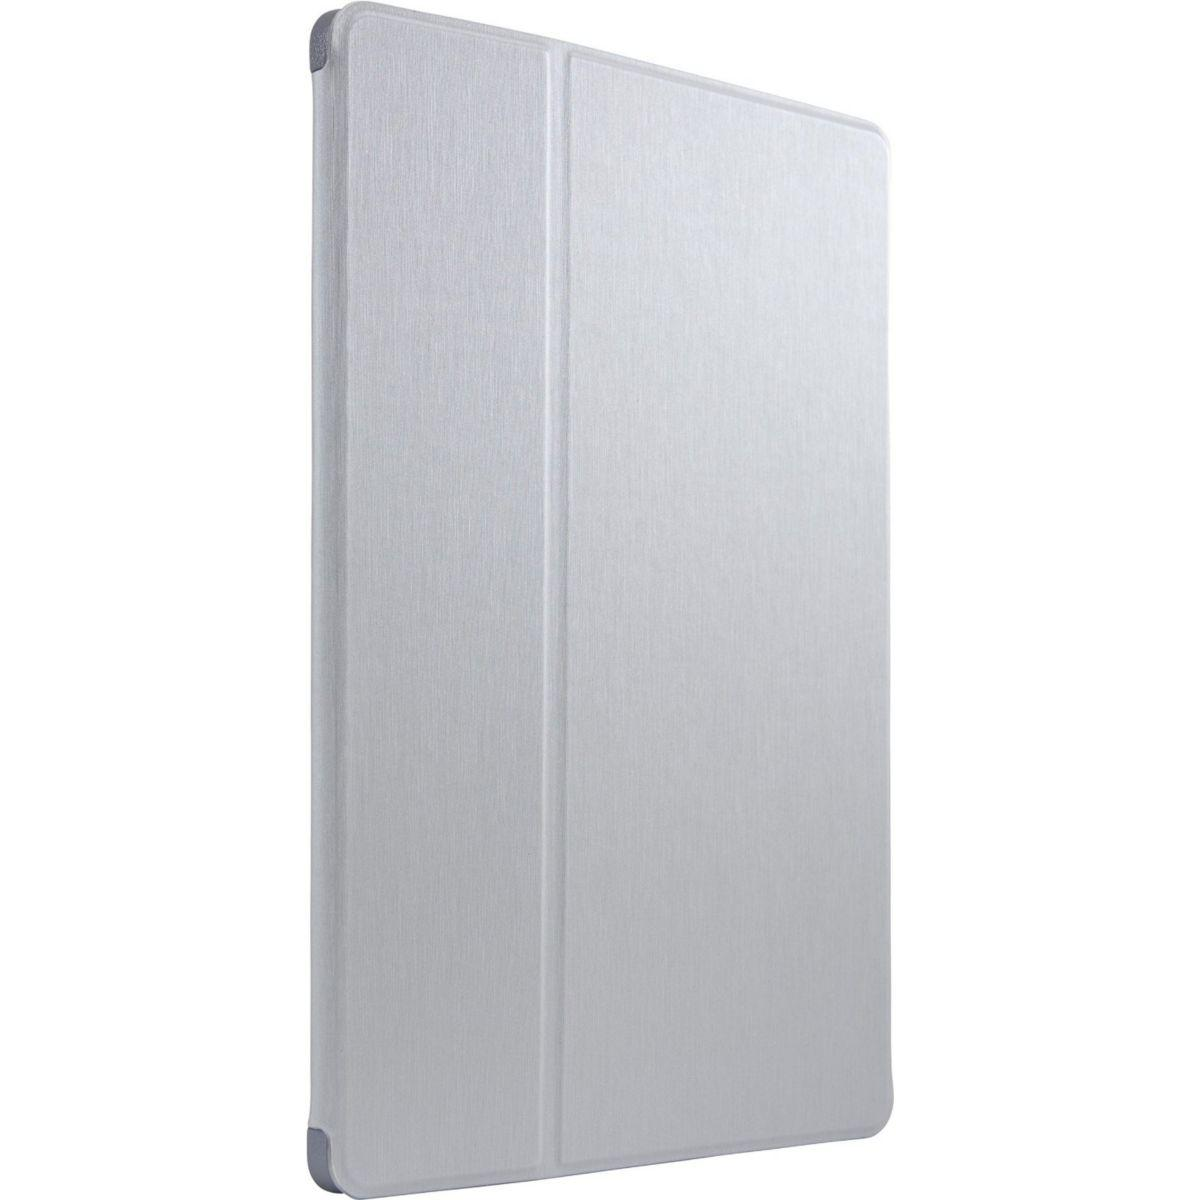 Folio caselogic porte-folio ipad air 2 gris alu - 20% de remise immédiate avec le code : cool20 (photo)